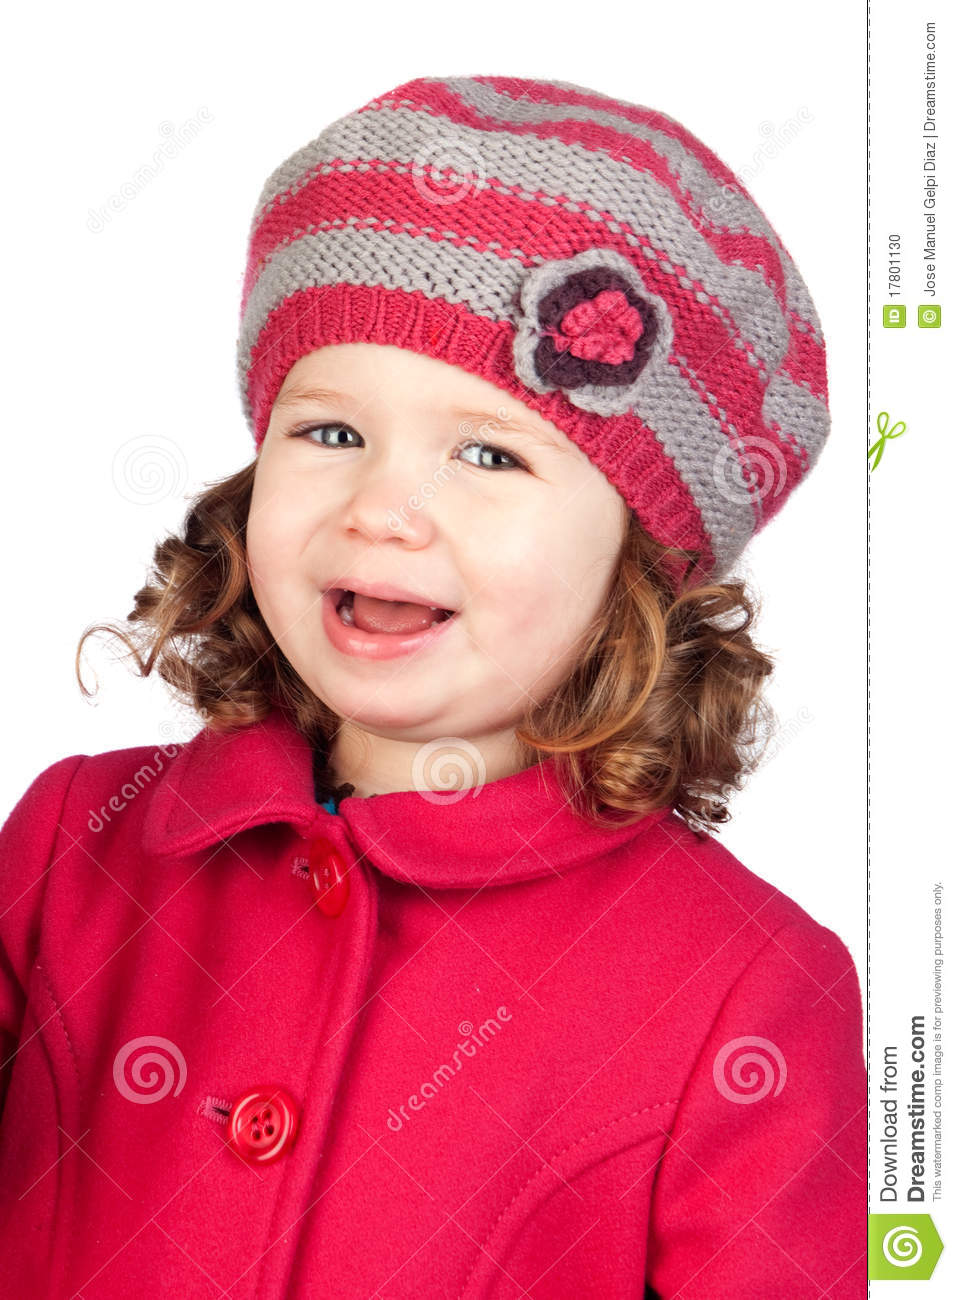 583e9ff28 Smiling Baby Girl With Wool Cap Stock Photo - Image of innocent ...